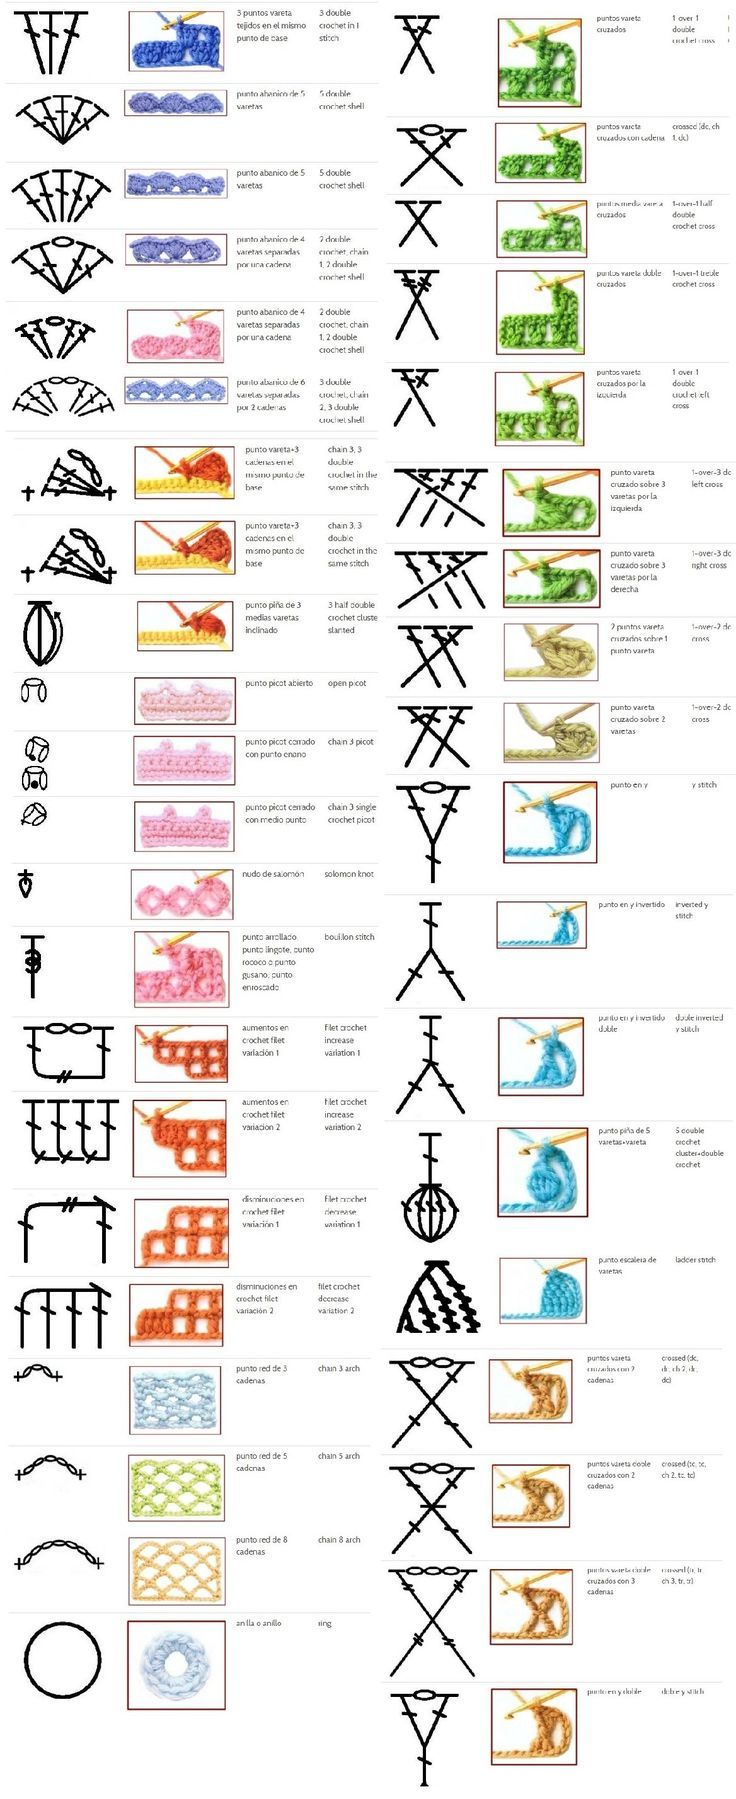 """100+ Crochet Stitch Symbols [ """"Crochet Symbols and how it looks after crocheting. Words are in Spanish and it is a Jpeg, so it cannot be translated."""", """"Crochet Stitch Symbols d-p"""", """"What a nice chart to identify crochet symbols!"""", """"I think some of my crochet stitches look like the chinese character \""""rice\""""."""", """"Basic Crochet Stitches Part 2"""", """"Stitches o plenty"""", """"different stitch types."""", """" Thanks ."""" ] # # #Crochet #Stitches #Chart, # #Crochet #Symbols, # #Croc..."""